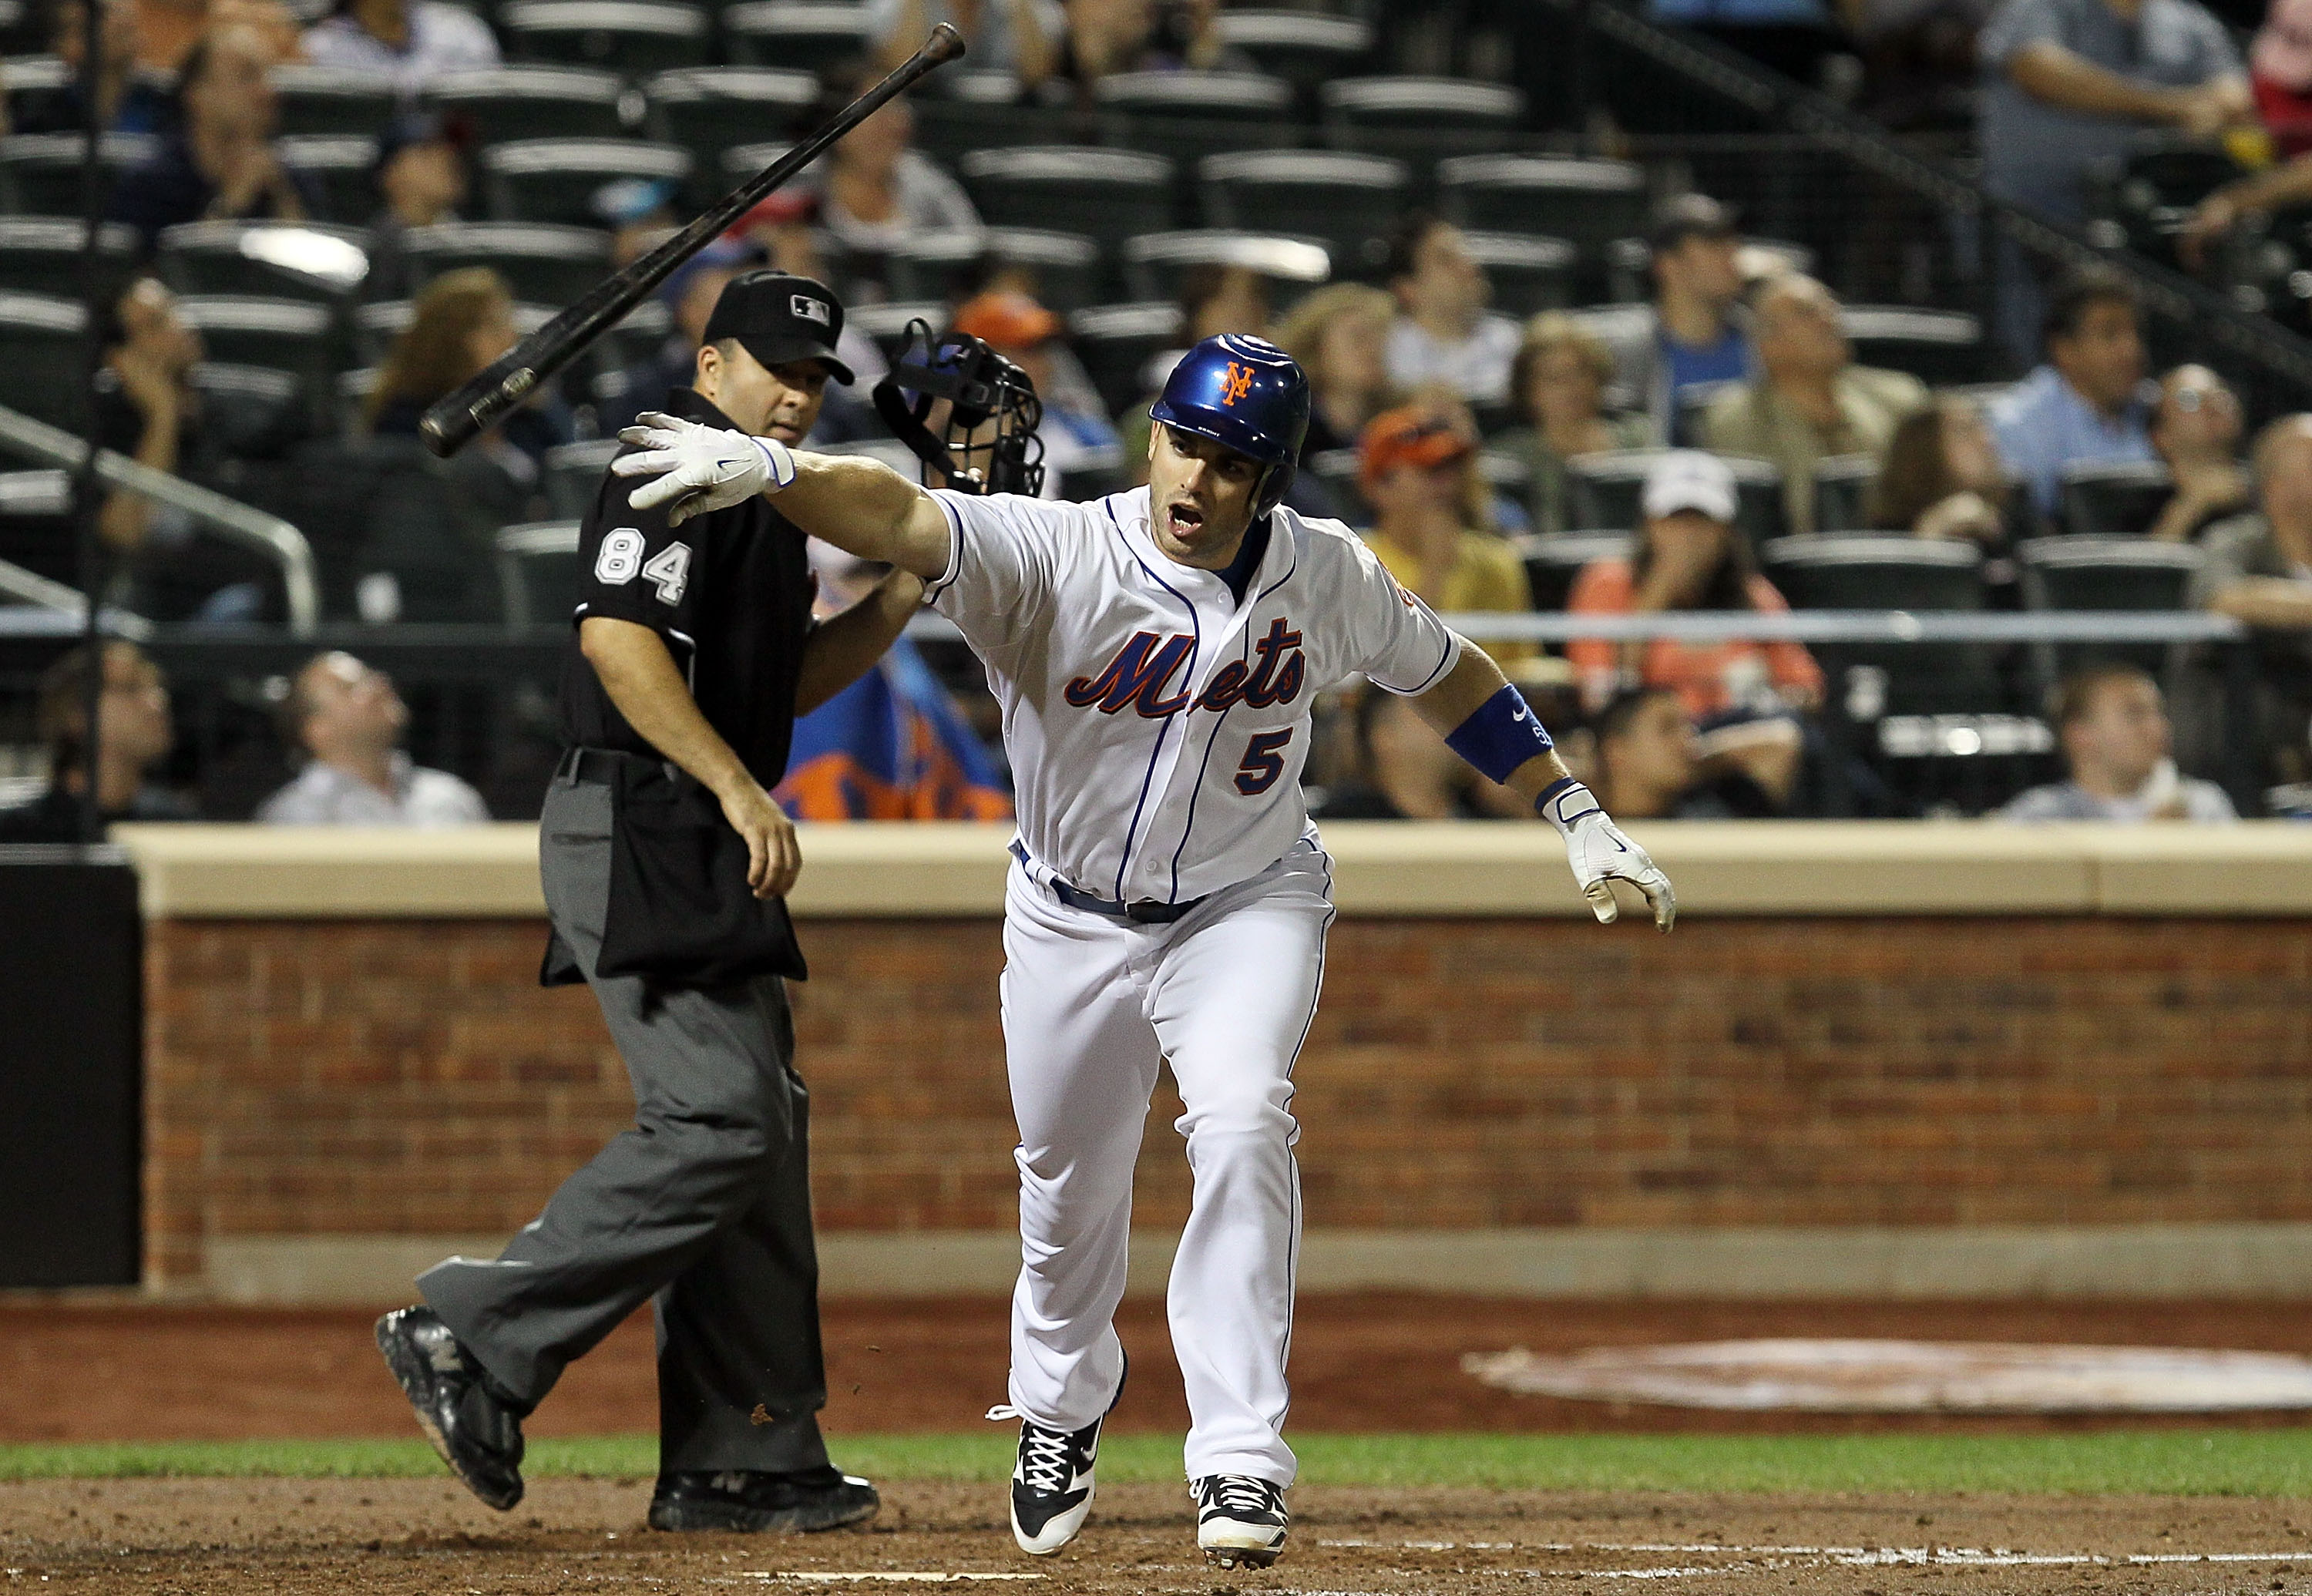 NEW YORK - AUGUST 27:  David Wright #5 of the New York Mets throws his bat after flying out in the fourth inning against the Houston Astros on August 27, 2010 at Citi Field in the Flushing neighborhood of the Queens borough of New York City.  (Photo by Ji